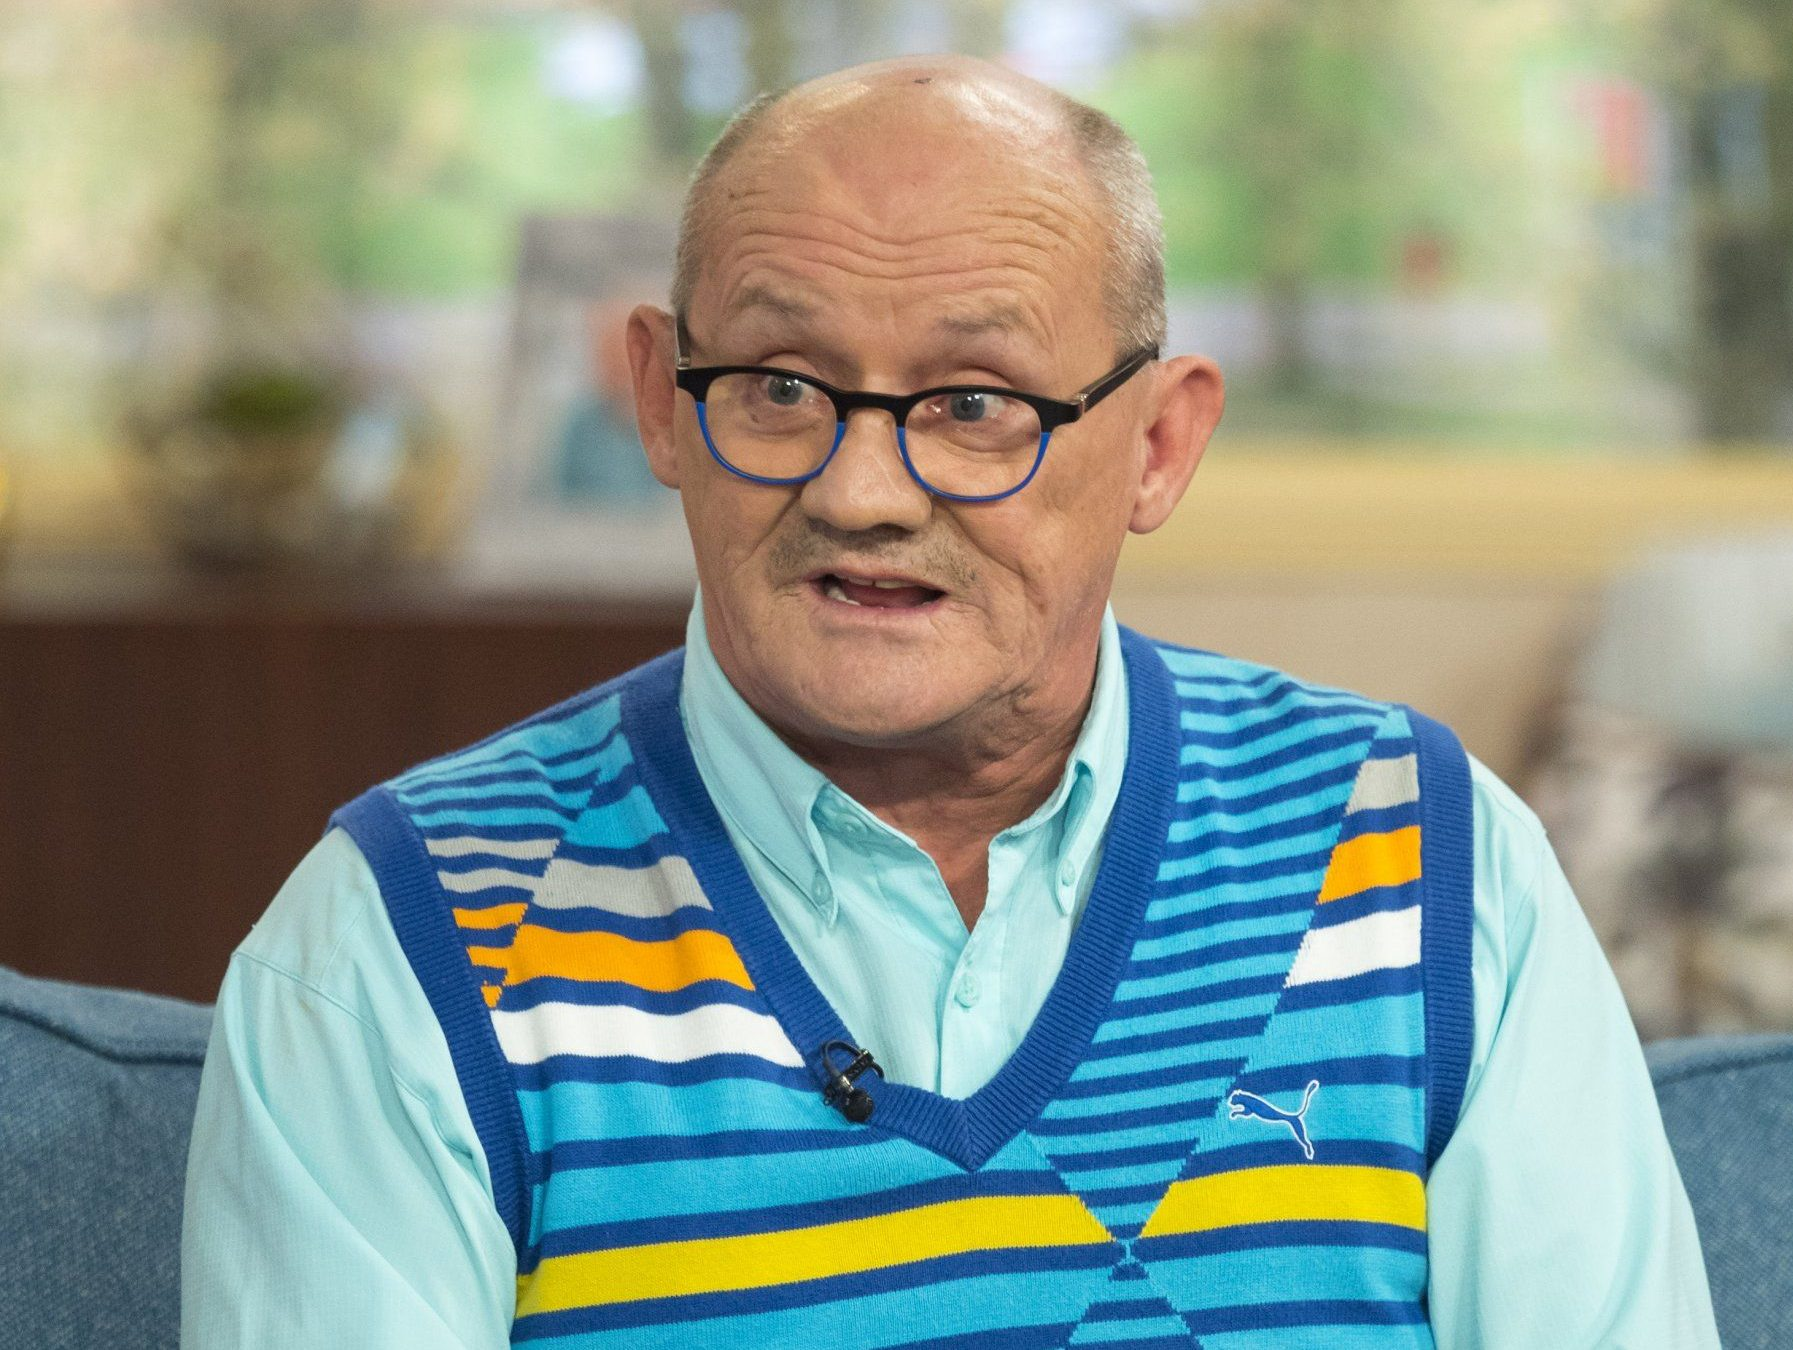 Brendan O'Carroll admits having 'big shoes to fill' when replacing Mrs Brown's Boys' Rory